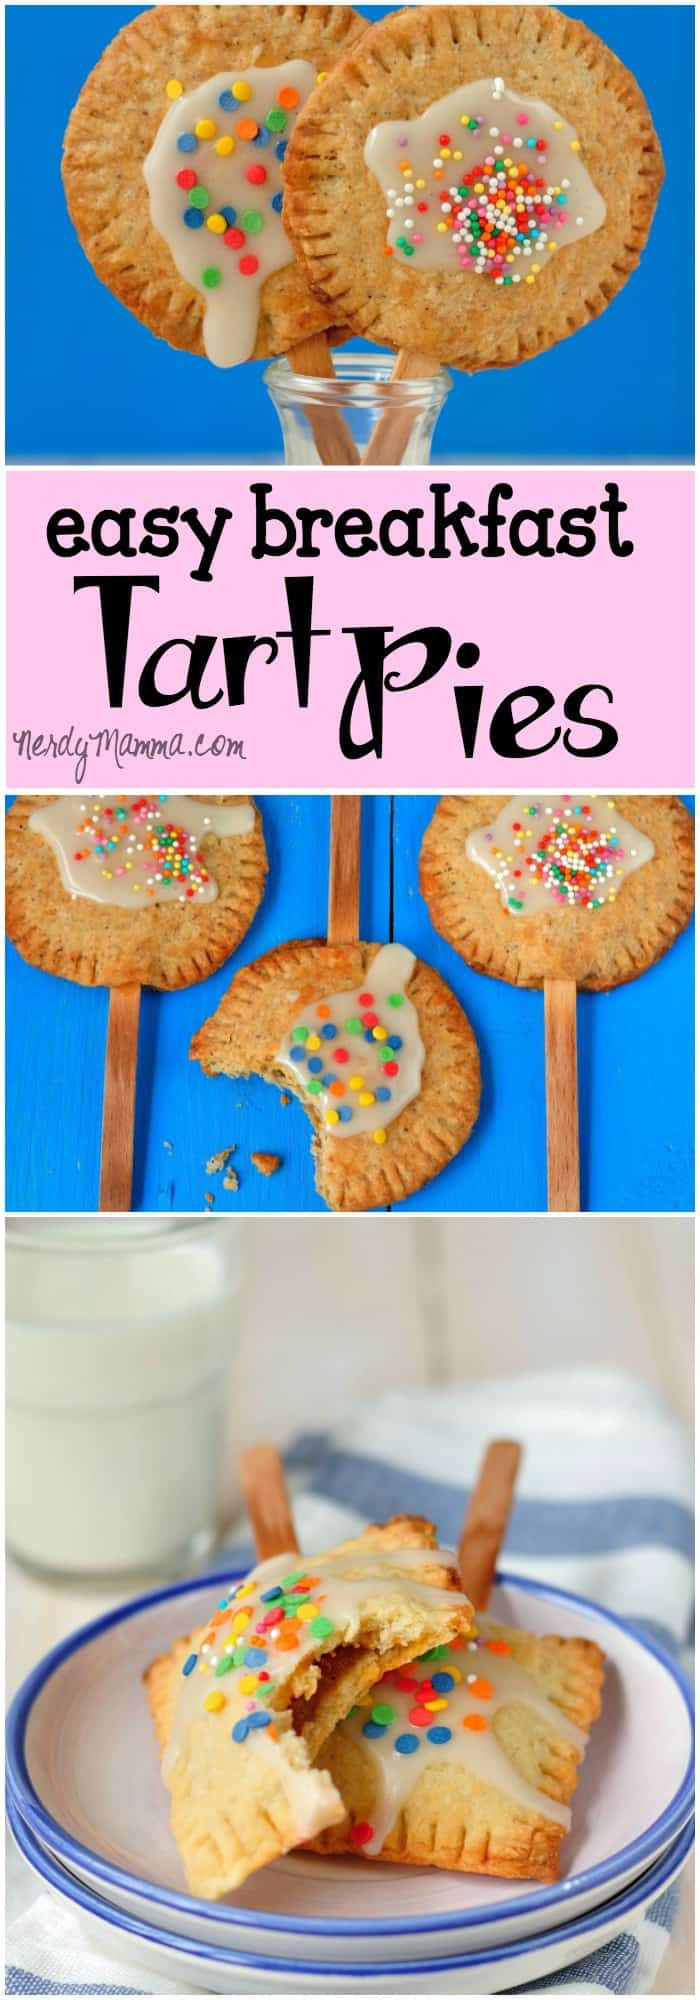 I love this quick recipe for making awesome homemade pop tarts. My kids can't wait for me to make more.